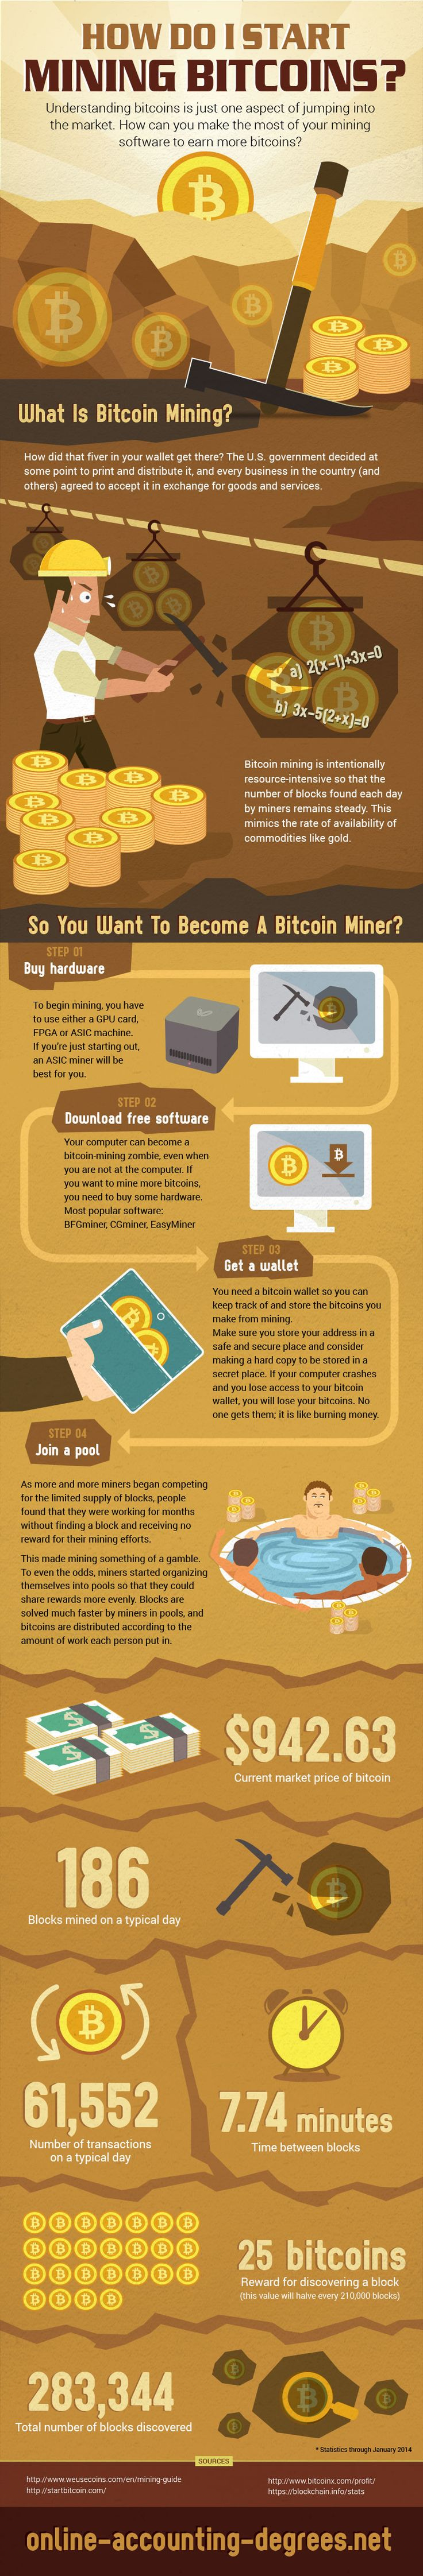 The infographic explaining every step you need to take in order to become a Bitcoin miner.